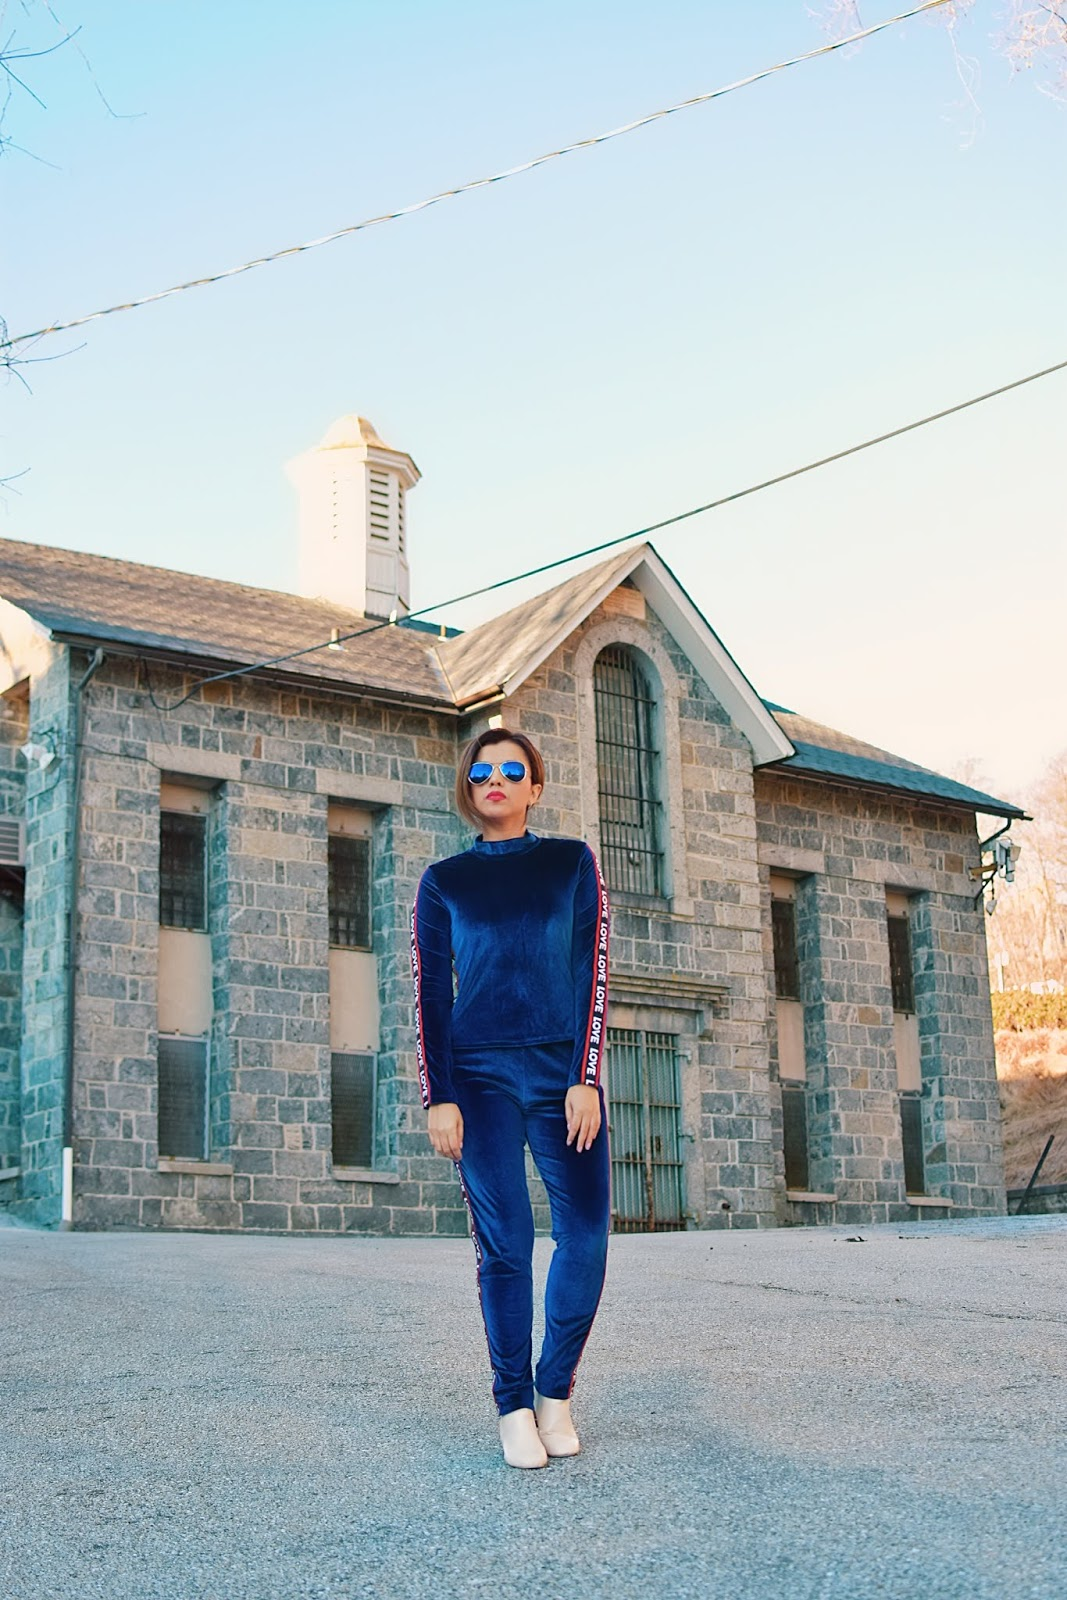 Blue Velvet by Mari Estilo-Look of the day-fashionblogger-shein-streetstyle-travelblogger-dcblogger-traveller-instagrammer-youtuber-travelblog-